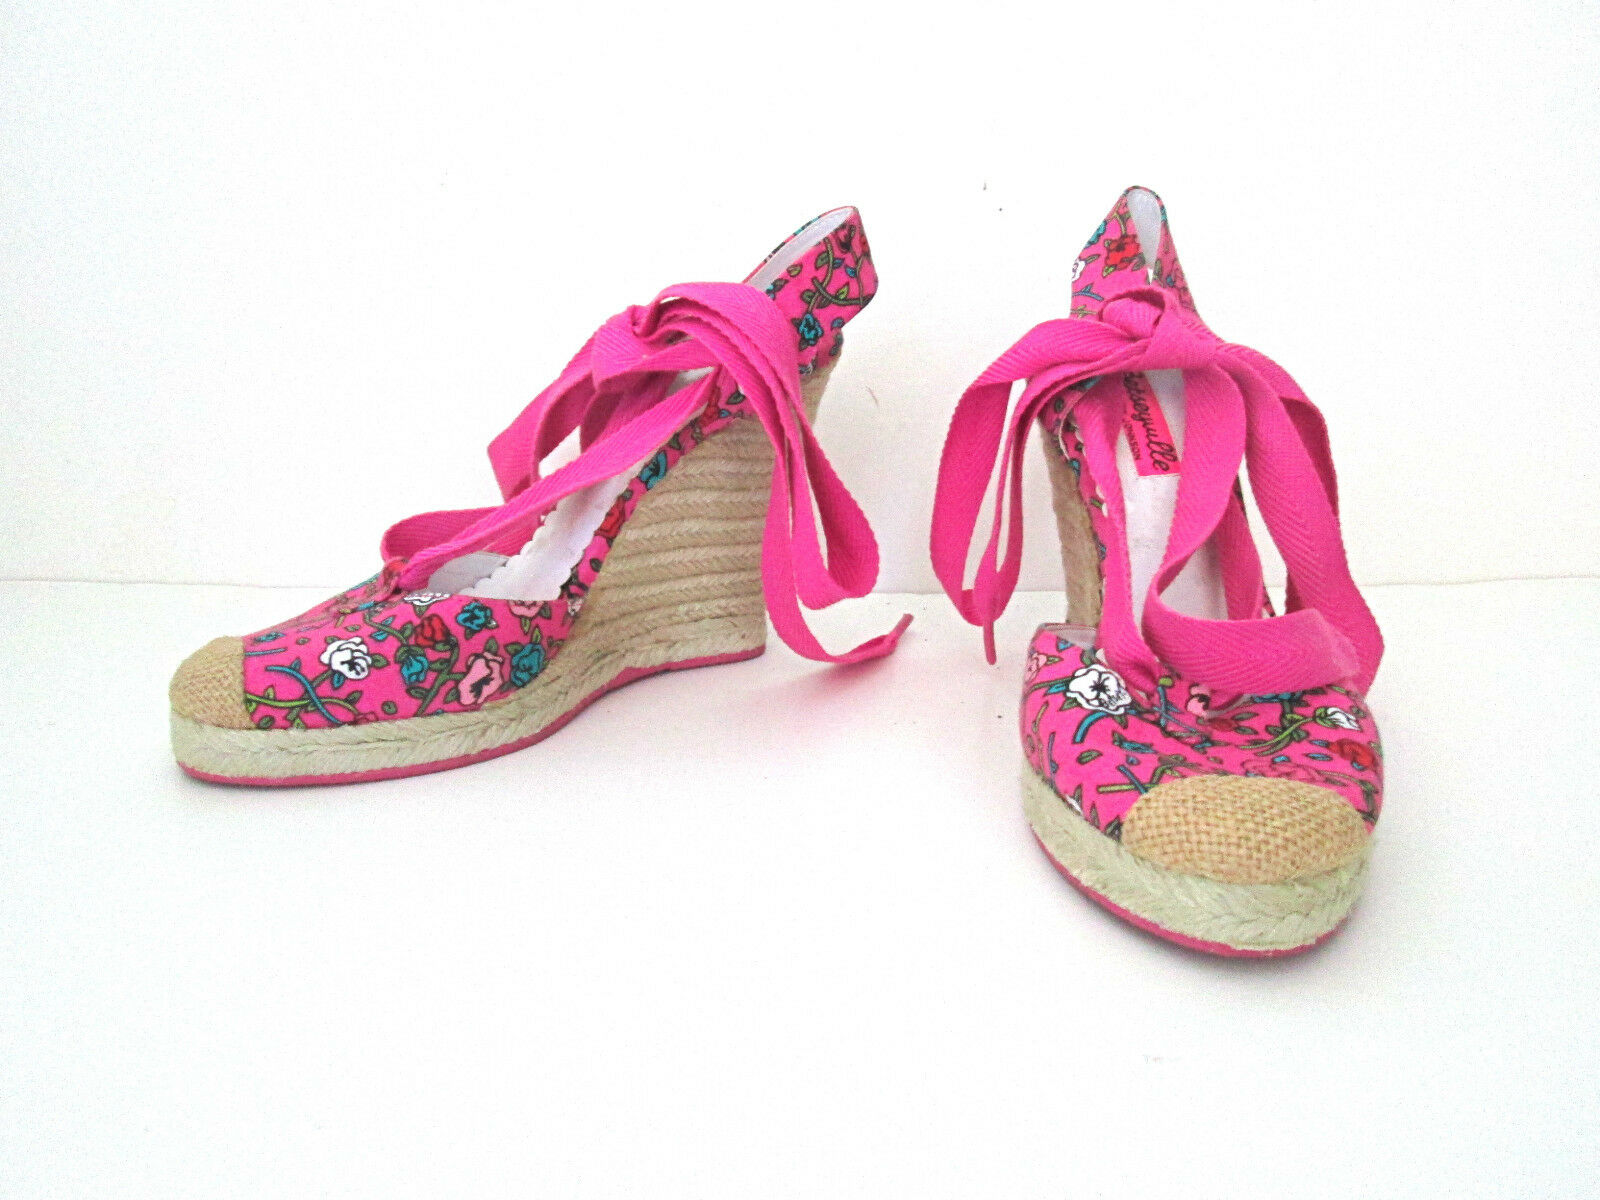 Betsey Johnson espadrilles pink floral rope wedge shoes ankle laces 7.5